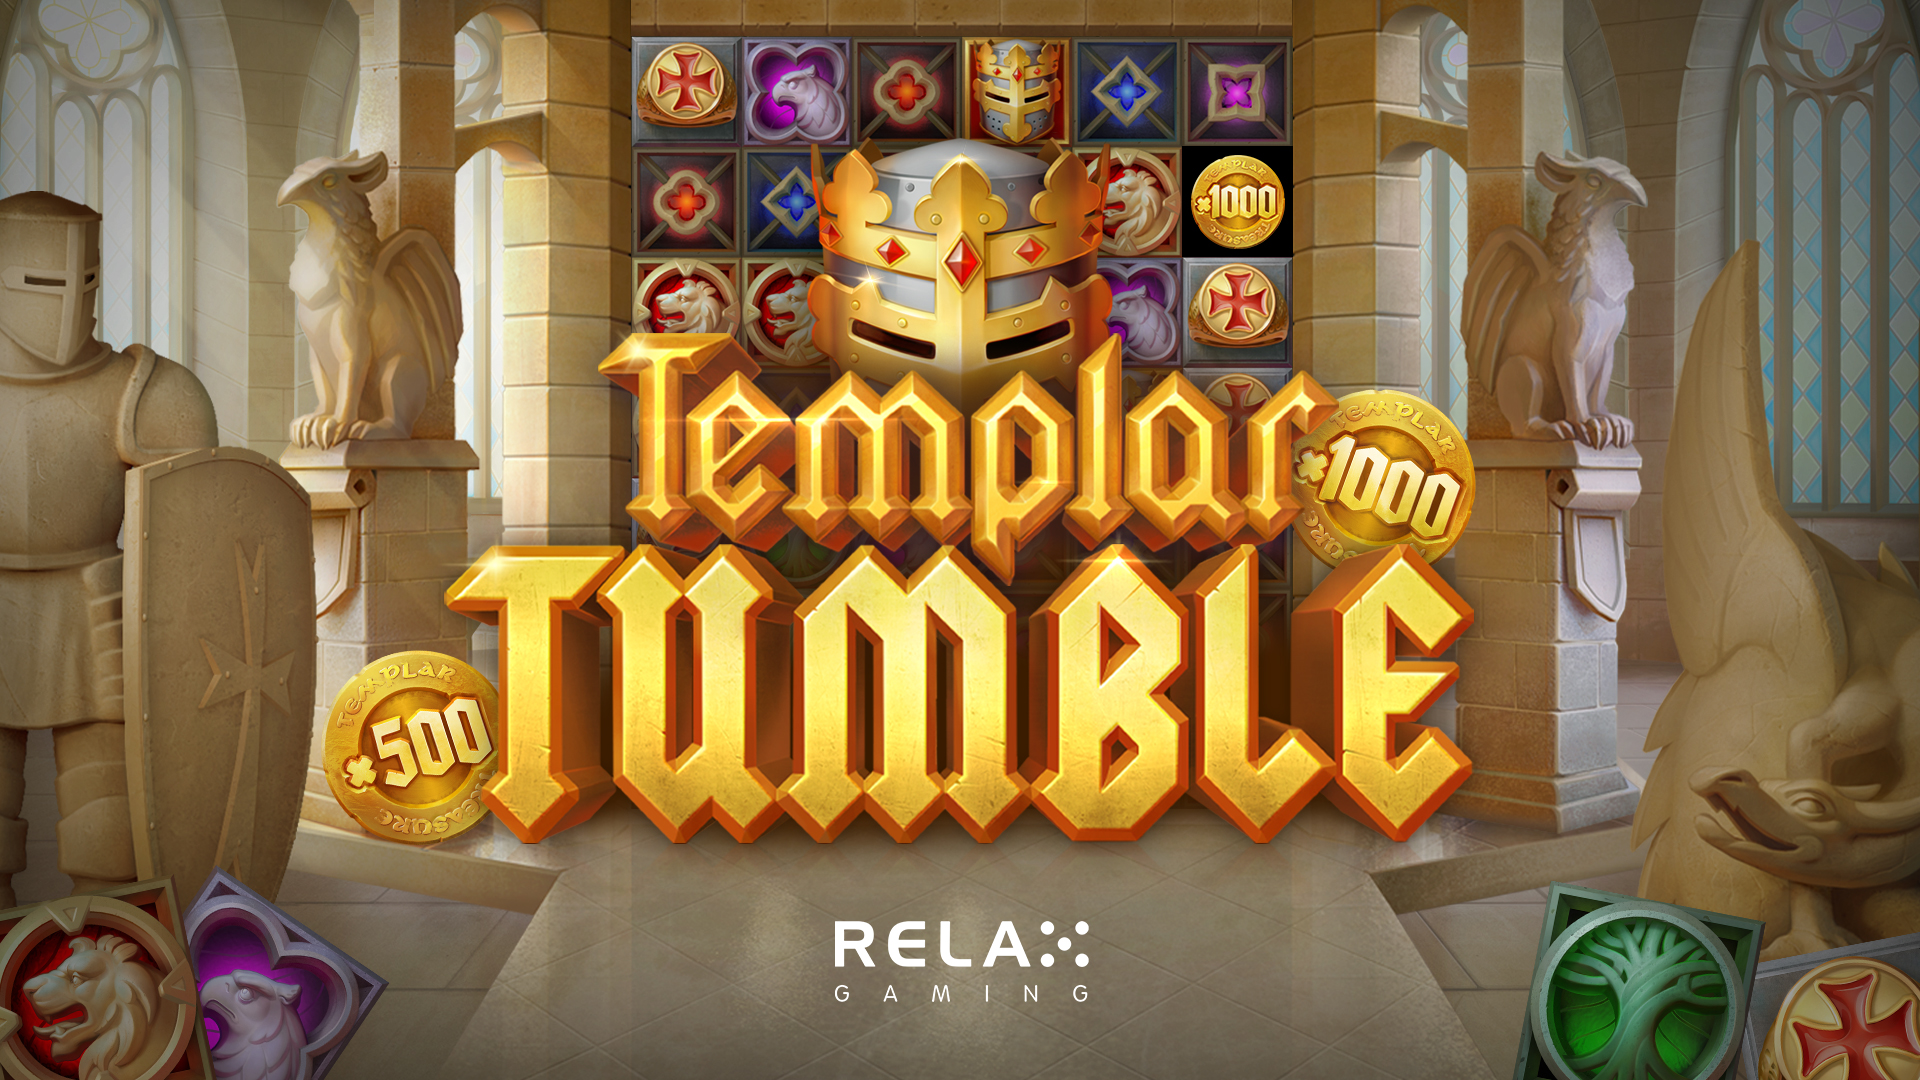 Divine gameplay on offer in Relax Gaming's new Templar Tumble